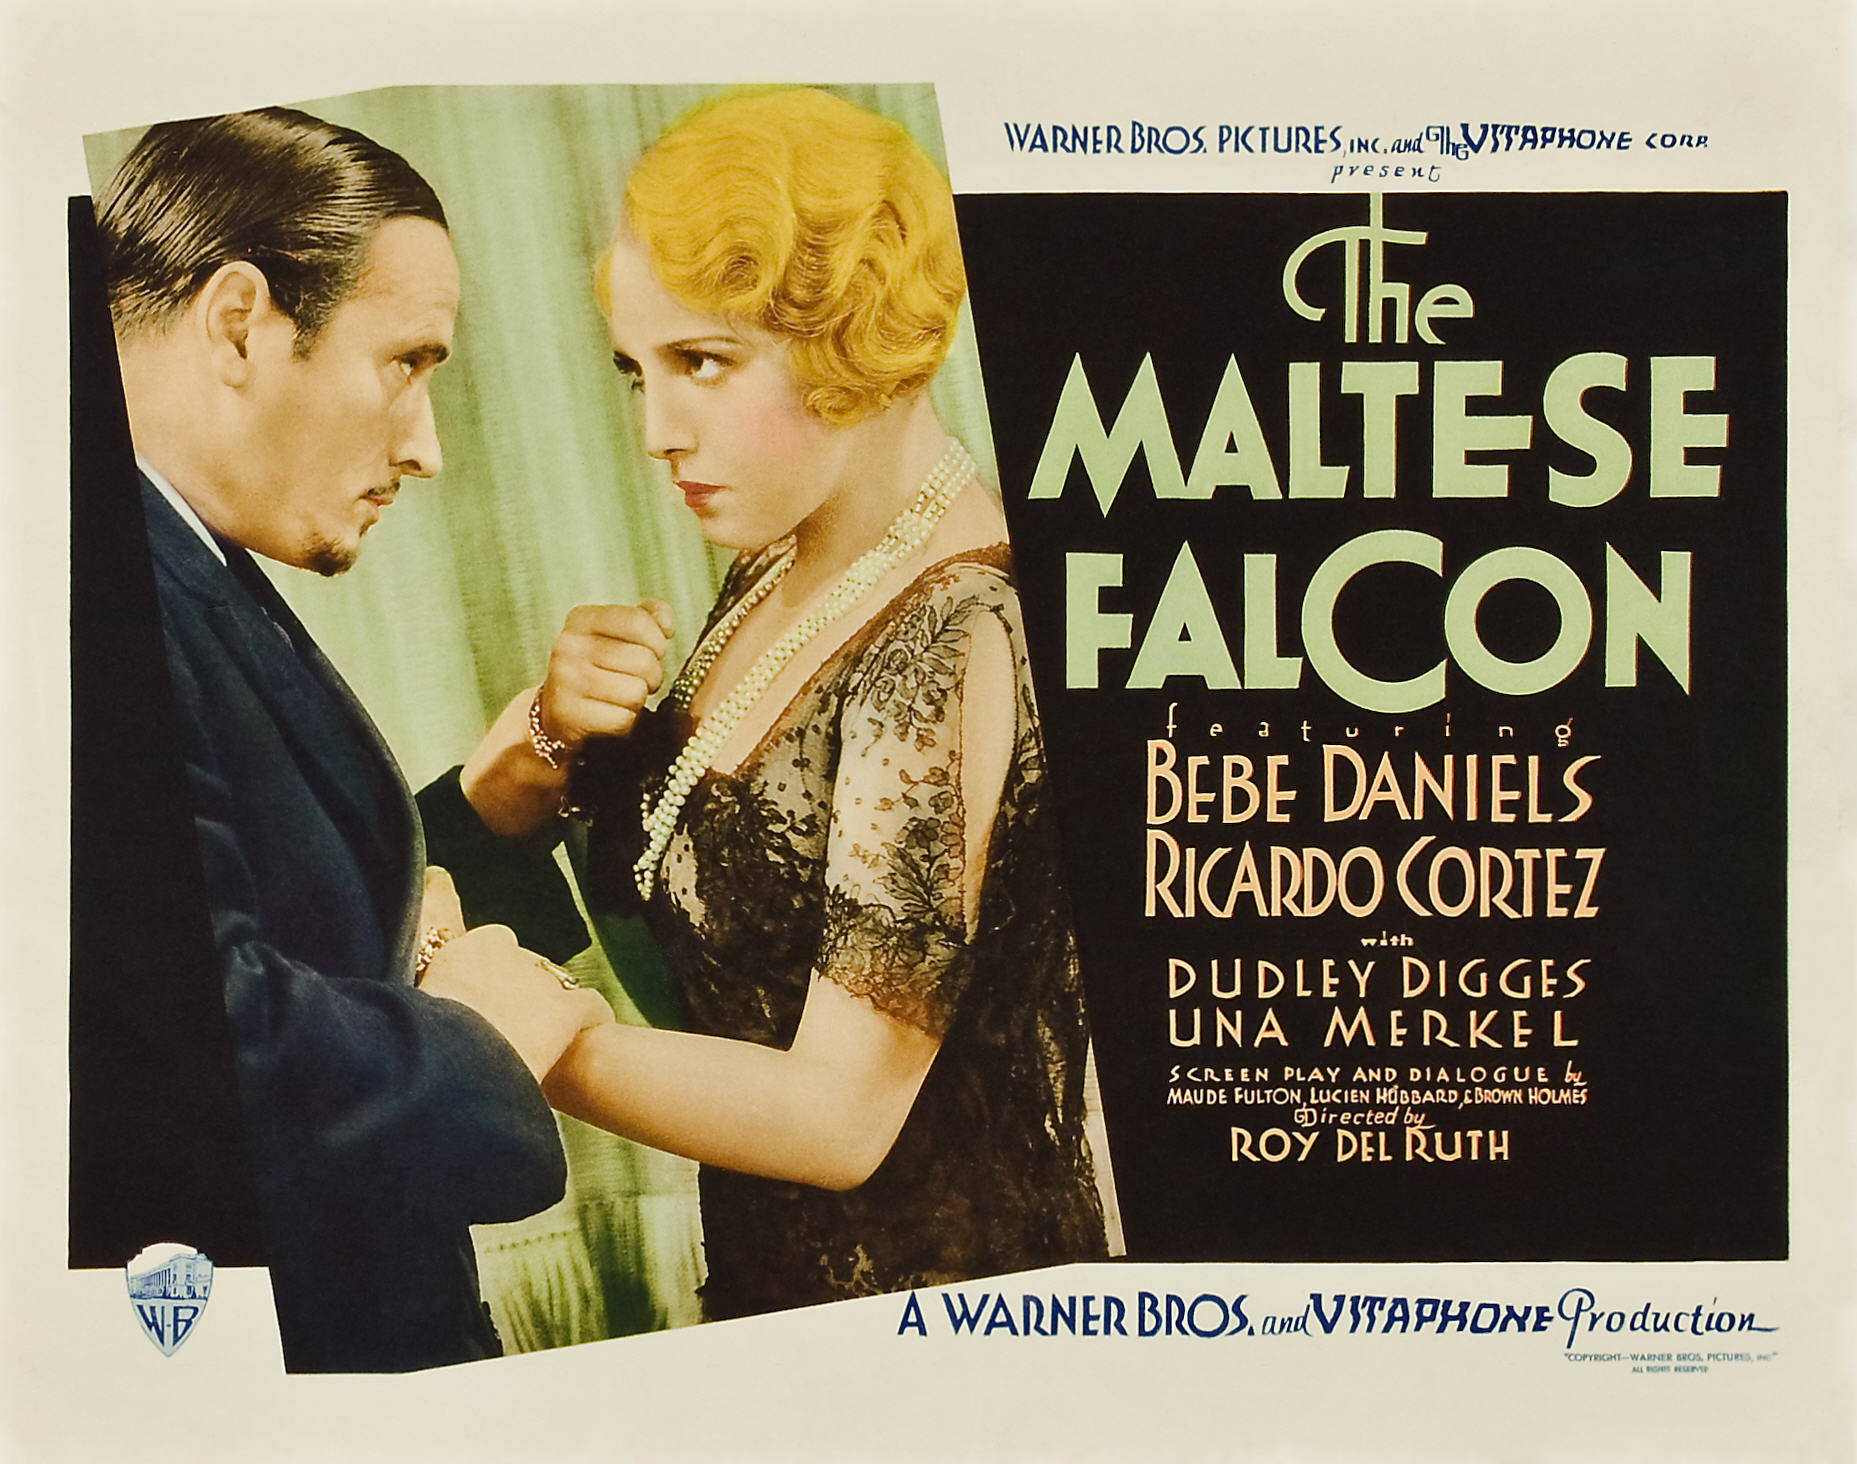 an analysis of the different changes made in the plot of the novel maltese falcon by dashiell hammet One says the maltese falcon was made of lead and the one described by dashiell hammett in the novel upon which mystery of the maltese falcon.